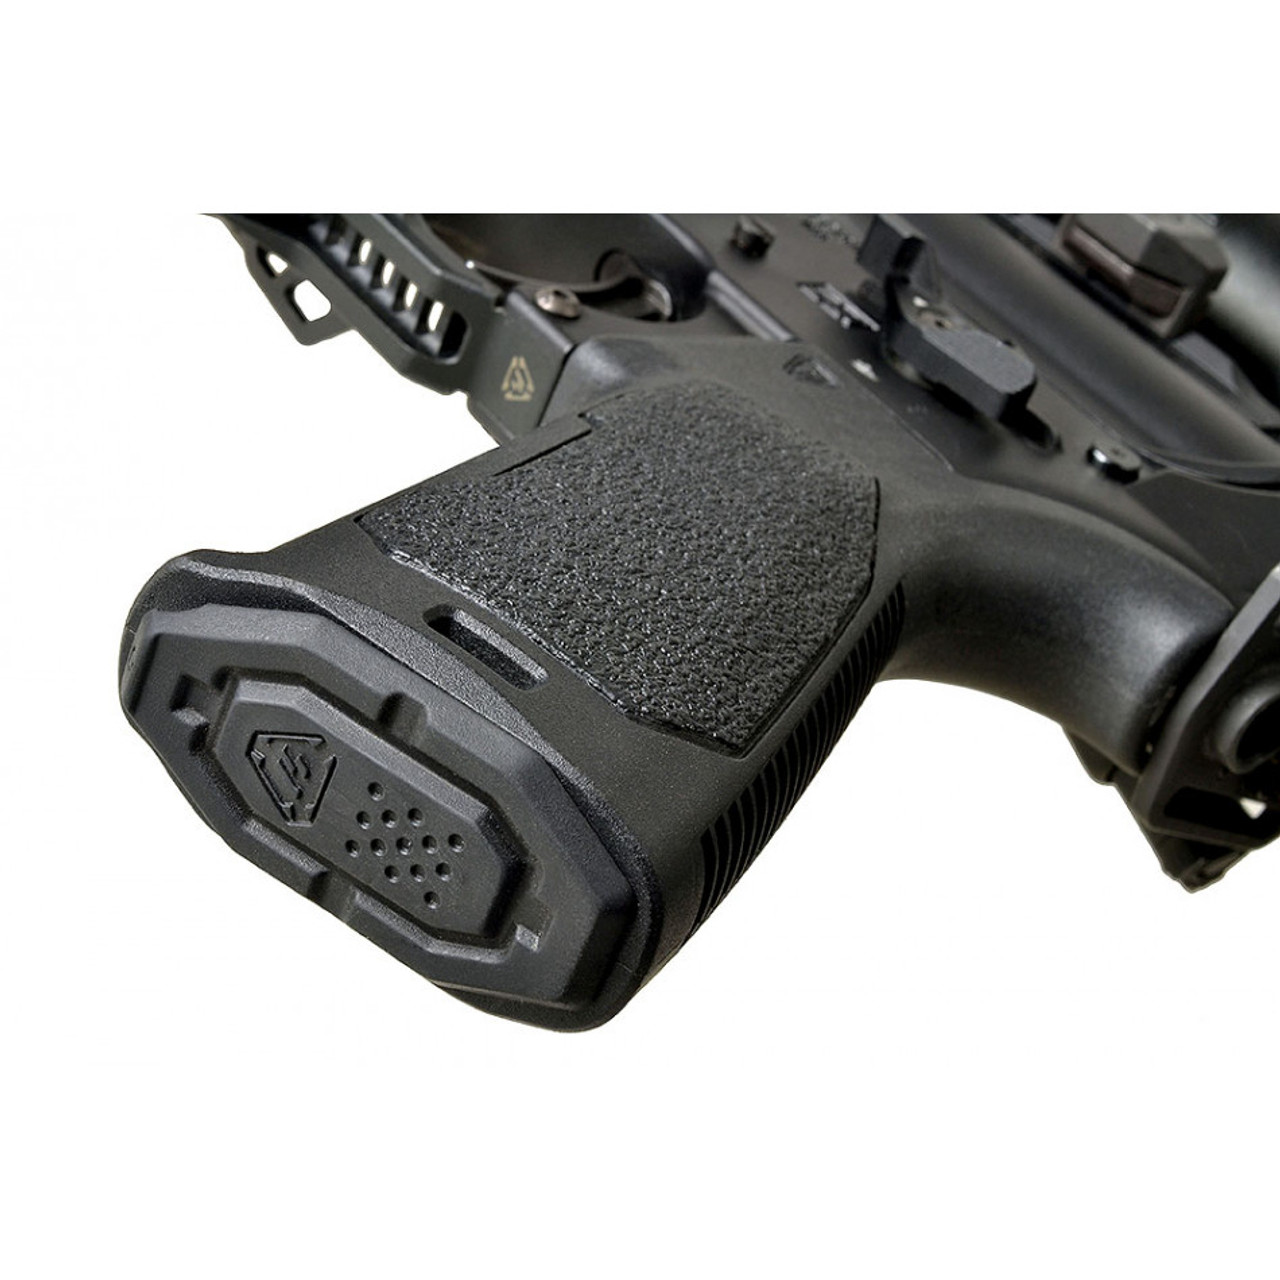 Strike Industries Viper Enhanced Pistol Grip - Cap